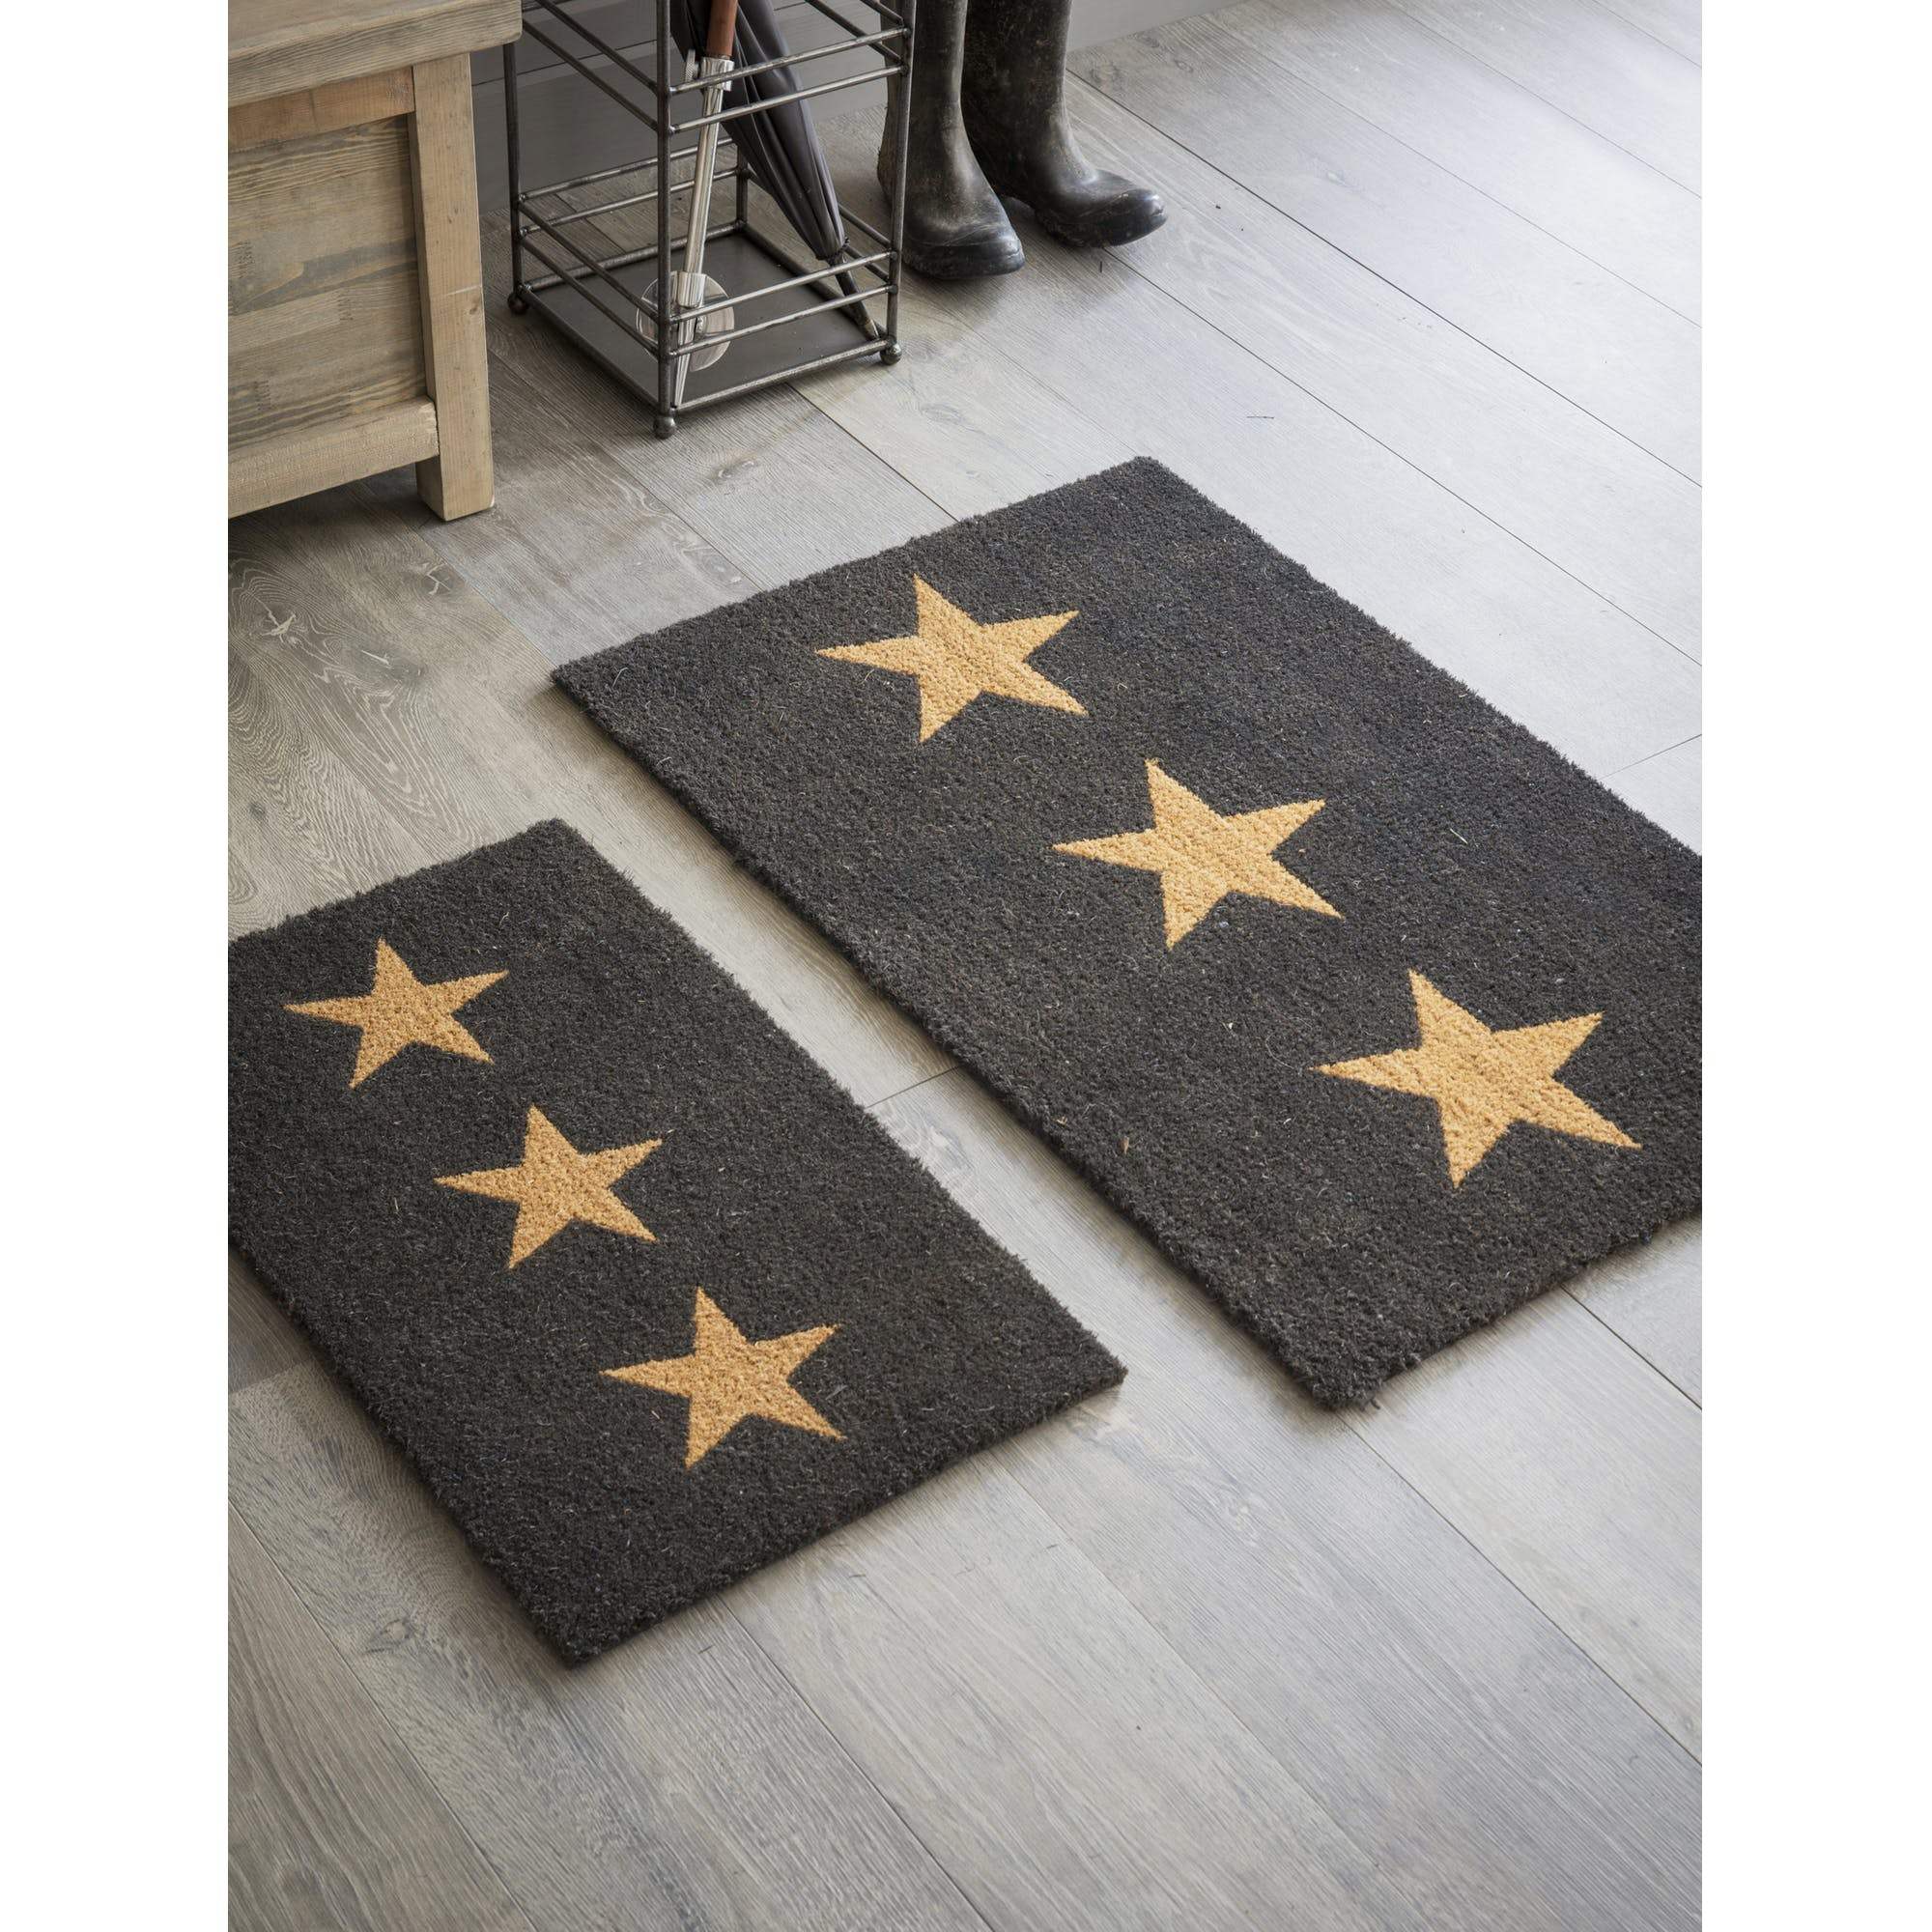 Three Star Doormat